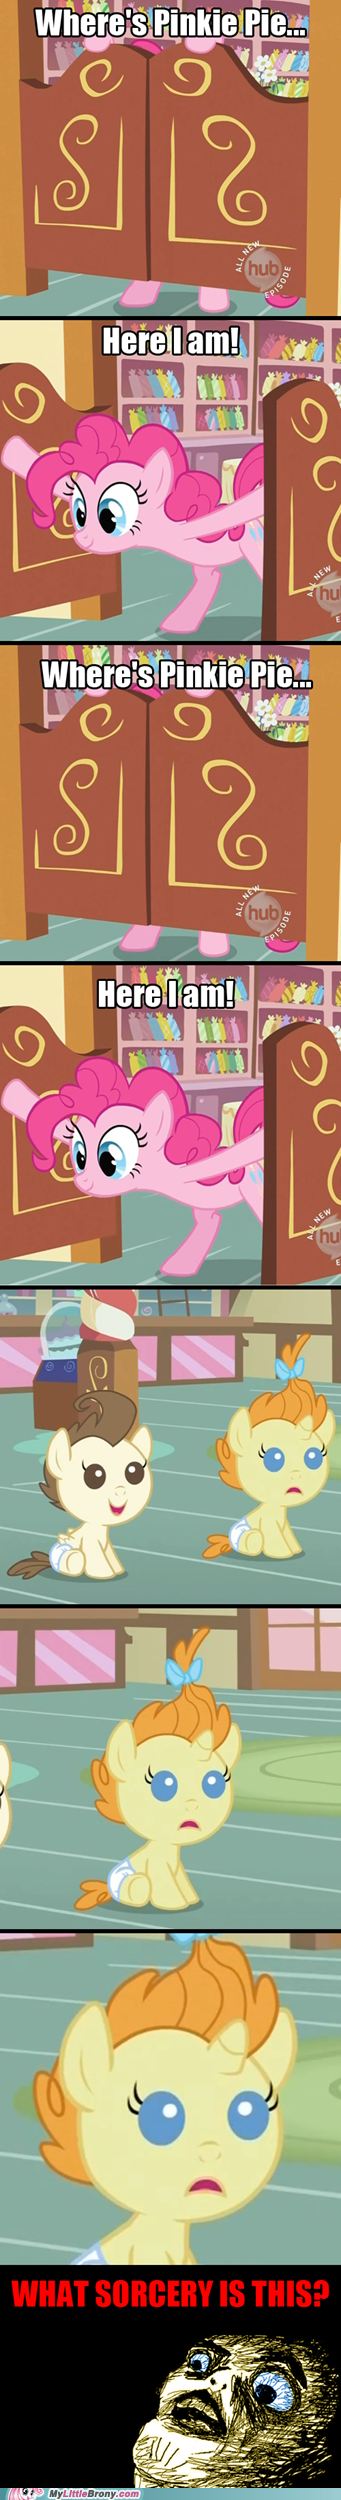 baby cakes,best of week,comics,here i am,pinkie pie,what sorcery is this